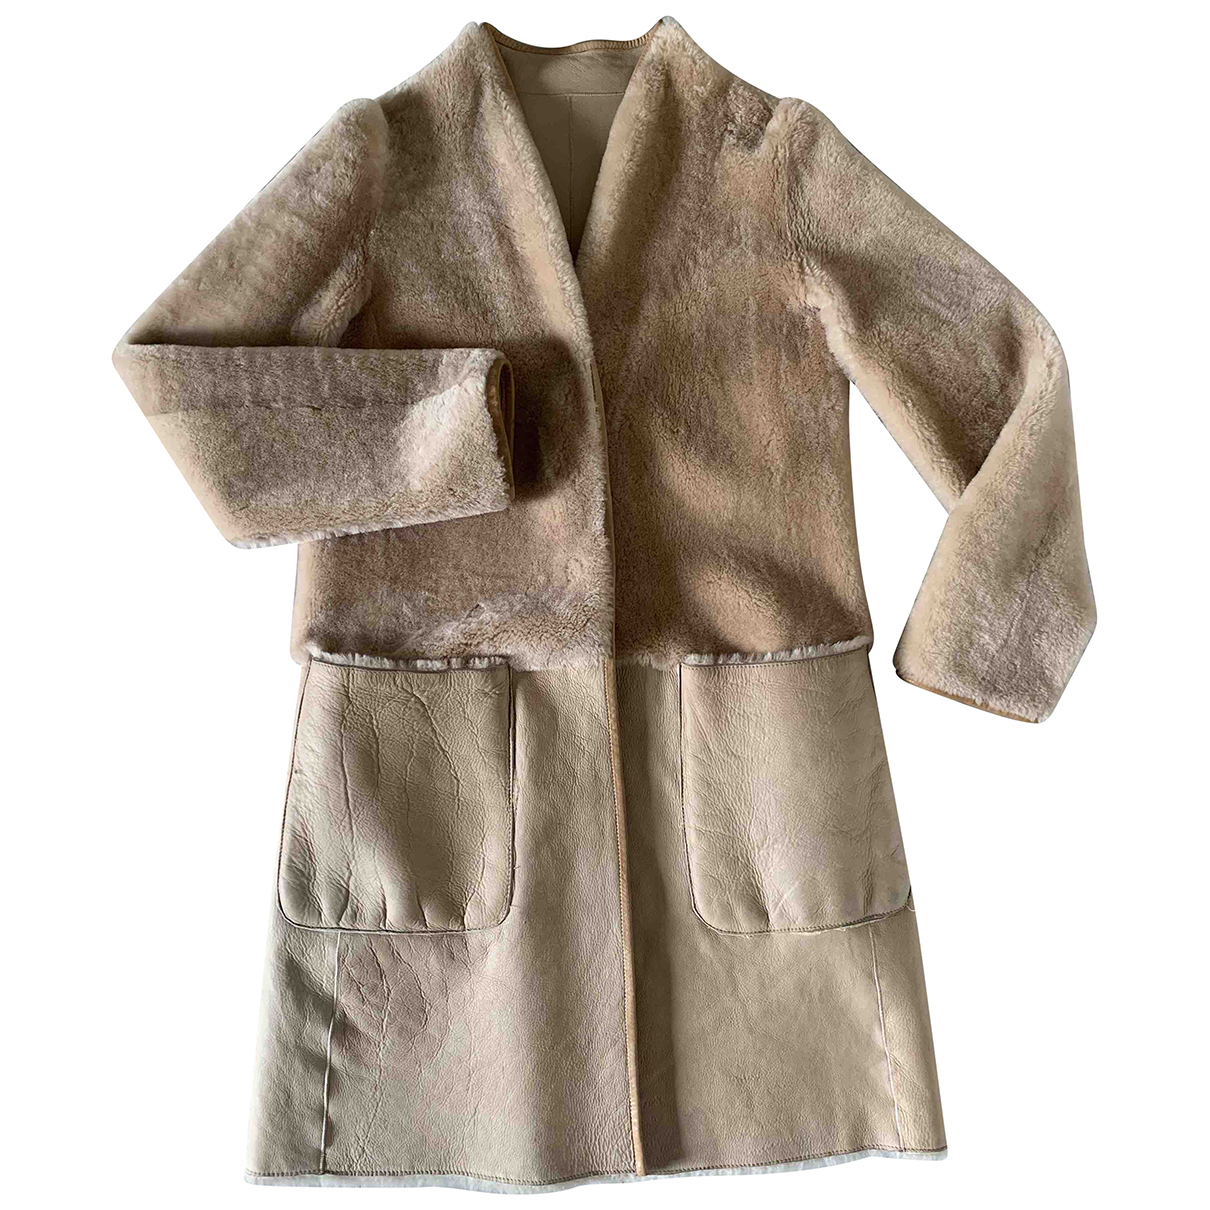 Emporio Armani N Beige Shearling Leather jacket for Women 44 IT